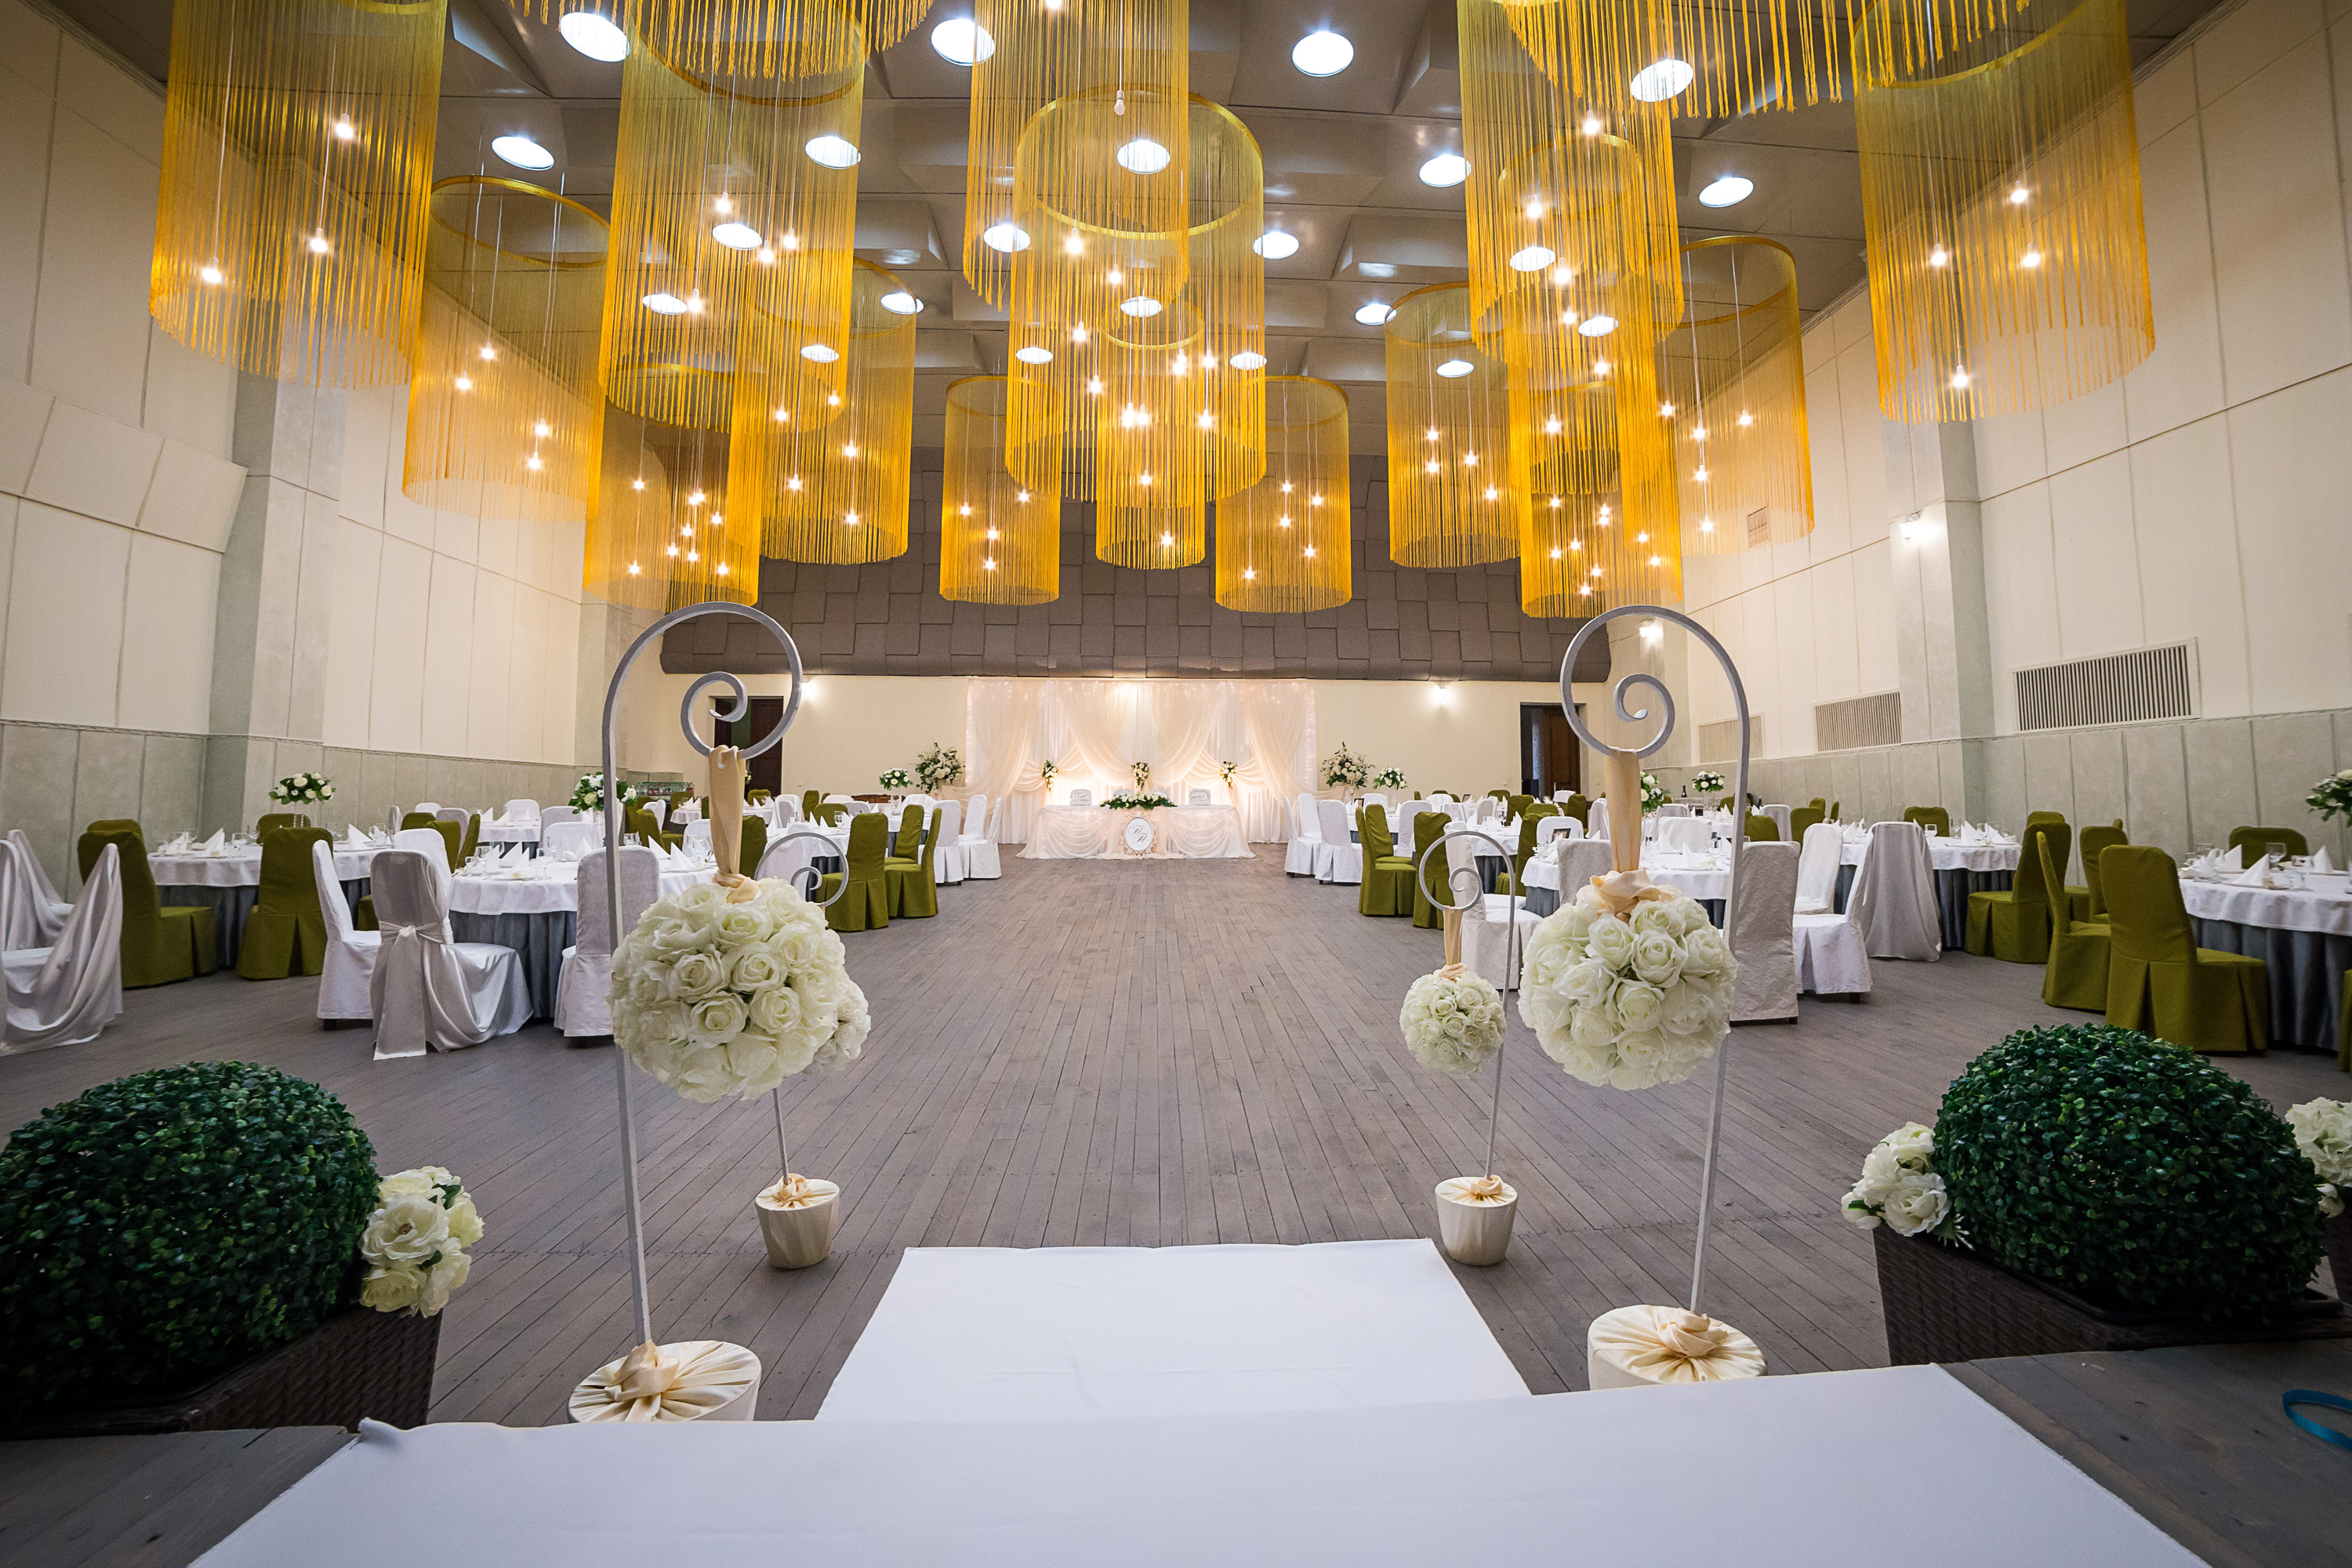 Picking your wedding venue can be the most stressful part of wedding planning. Here are 5 things to go over when picking out your wedding venue.